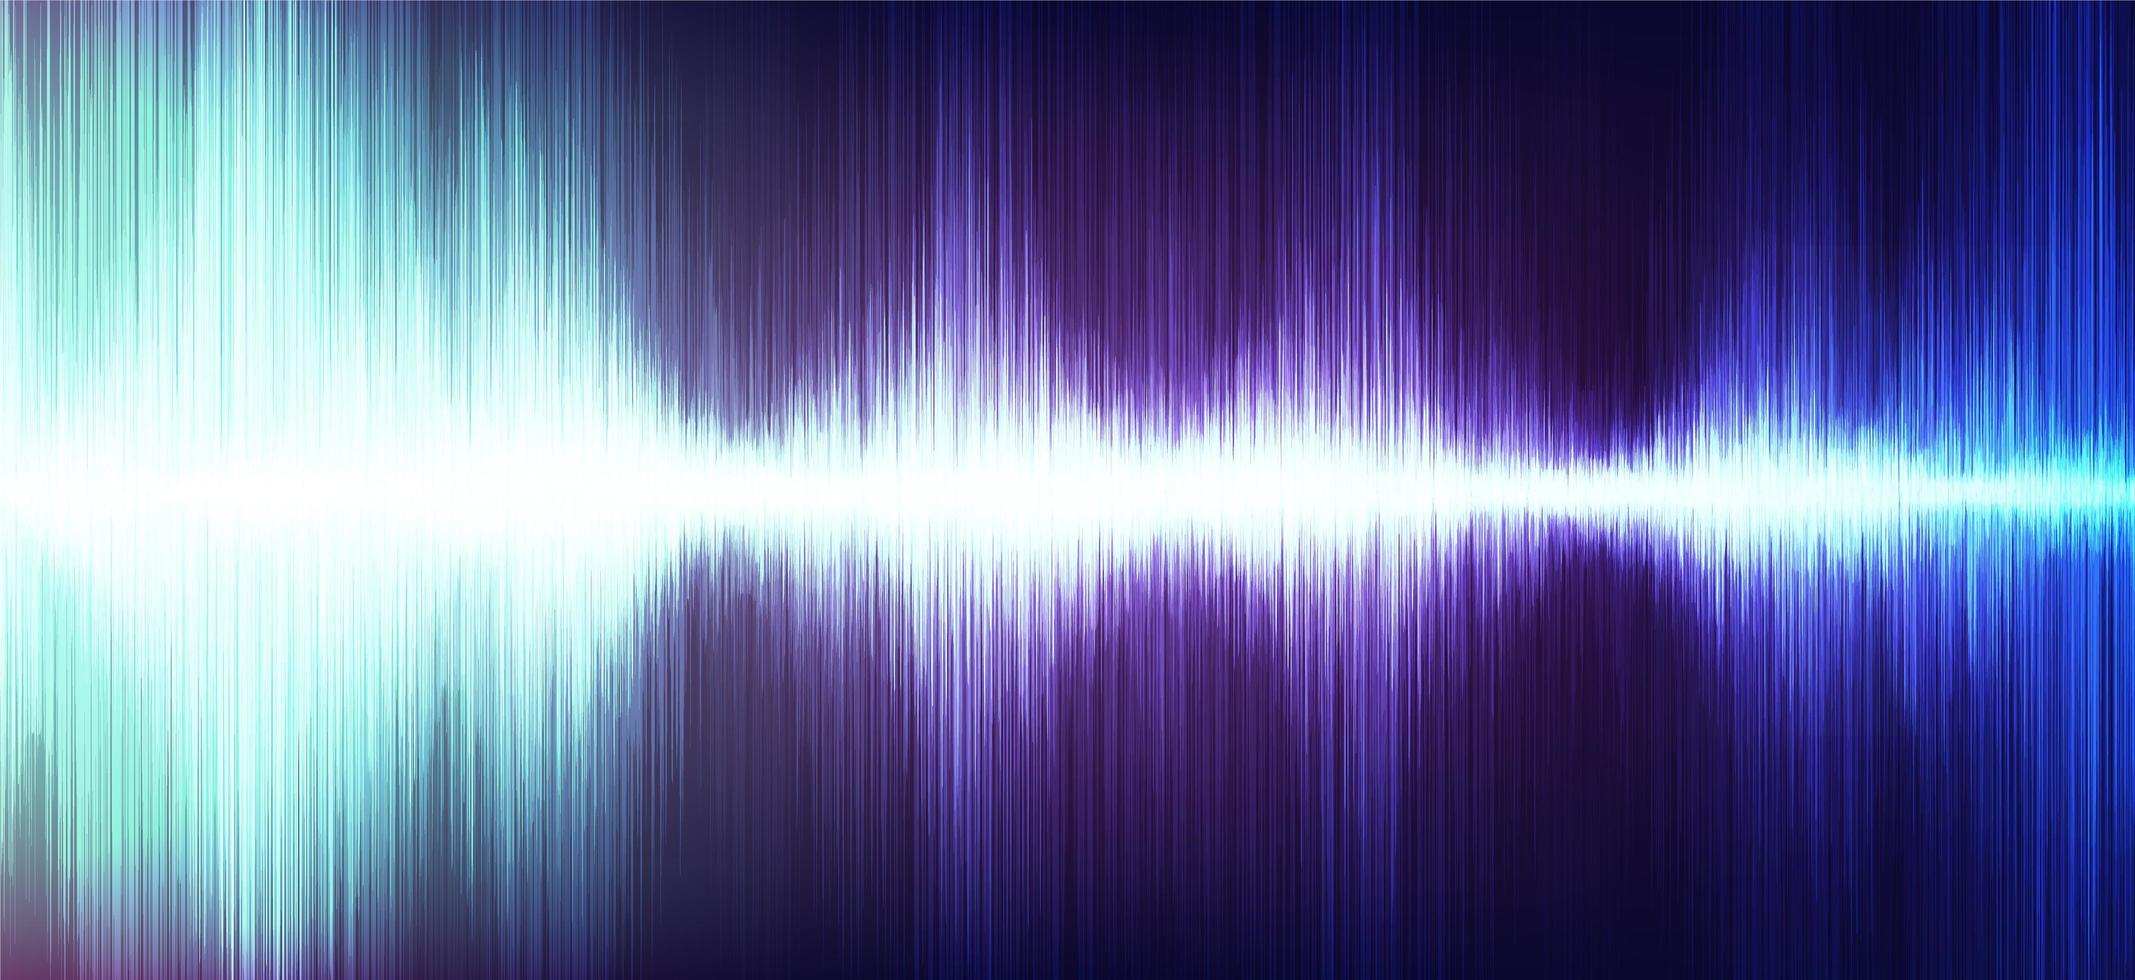 Modern Digital Sound Wave with on Ultra Violet Background,technology and earthquake wave concept,design for music industry,Vector,Illustration. vector